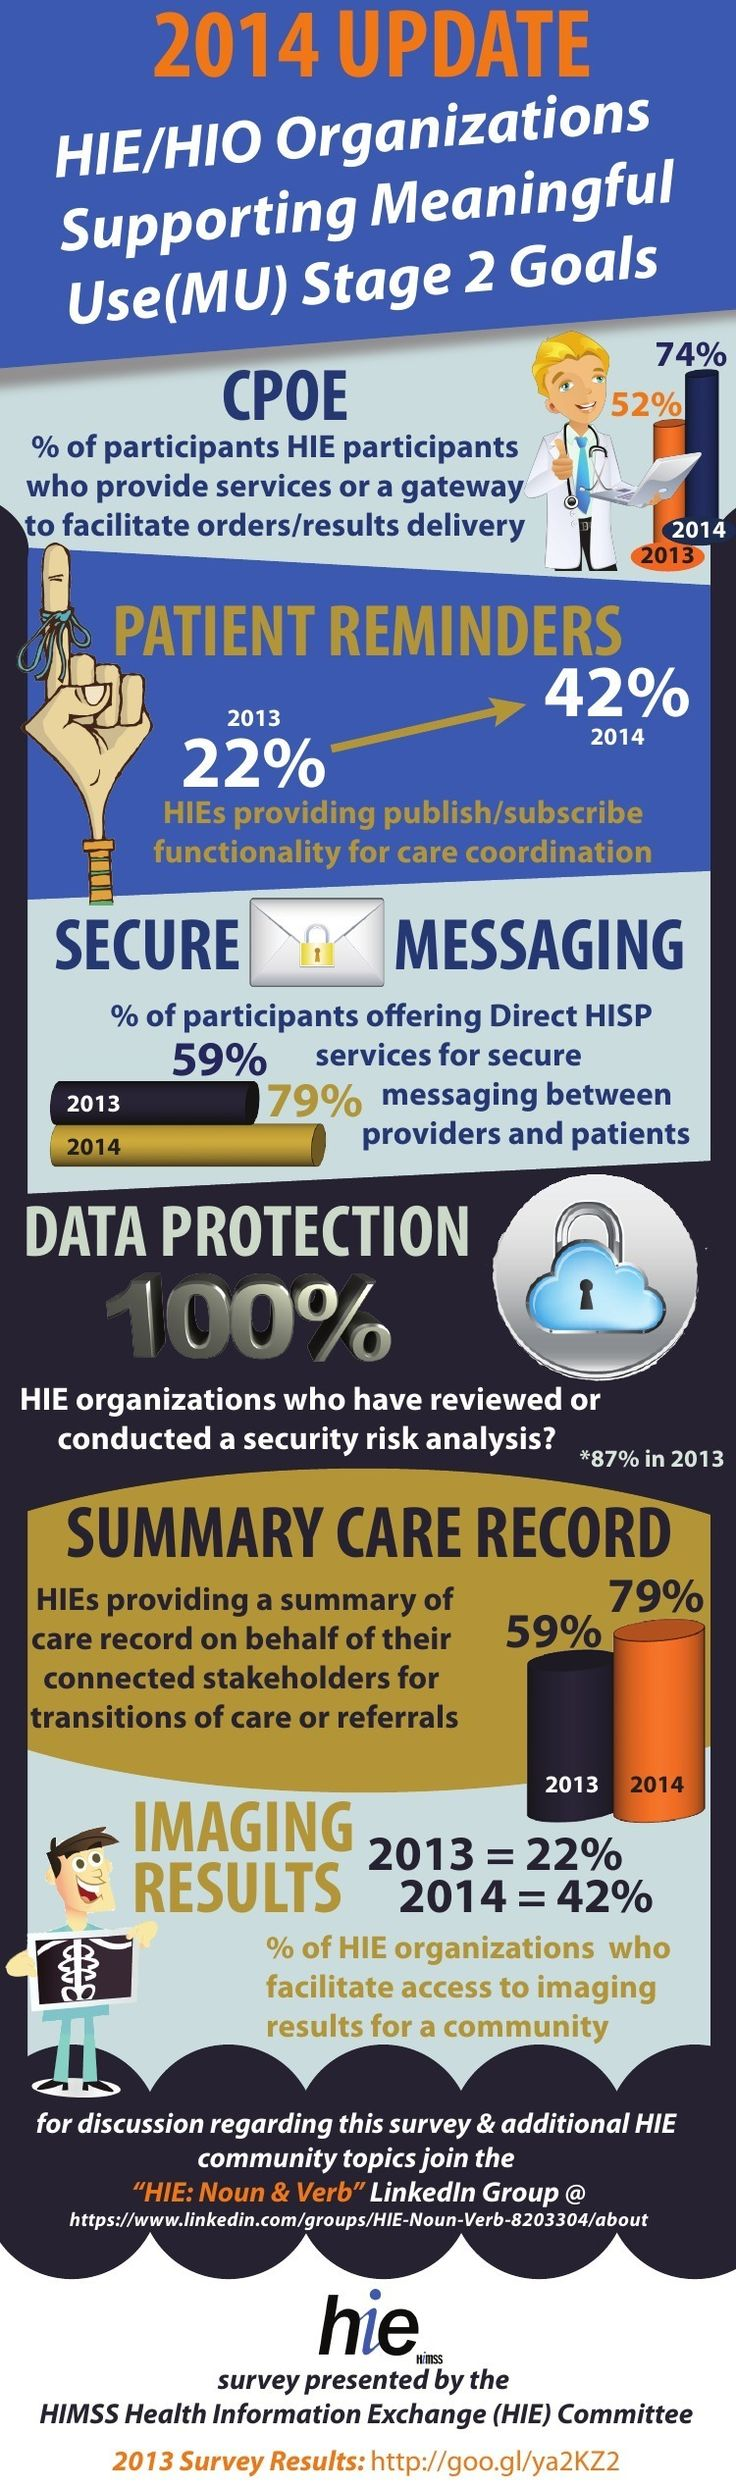 2014 survey-results infographic highlights progress and notable improvements during the last year, including critical Meaningful Use Stage 2 benchmarks for eligible professionals (EPs), eligible hospitals (EHs), and critical access hospitals (CAHs).